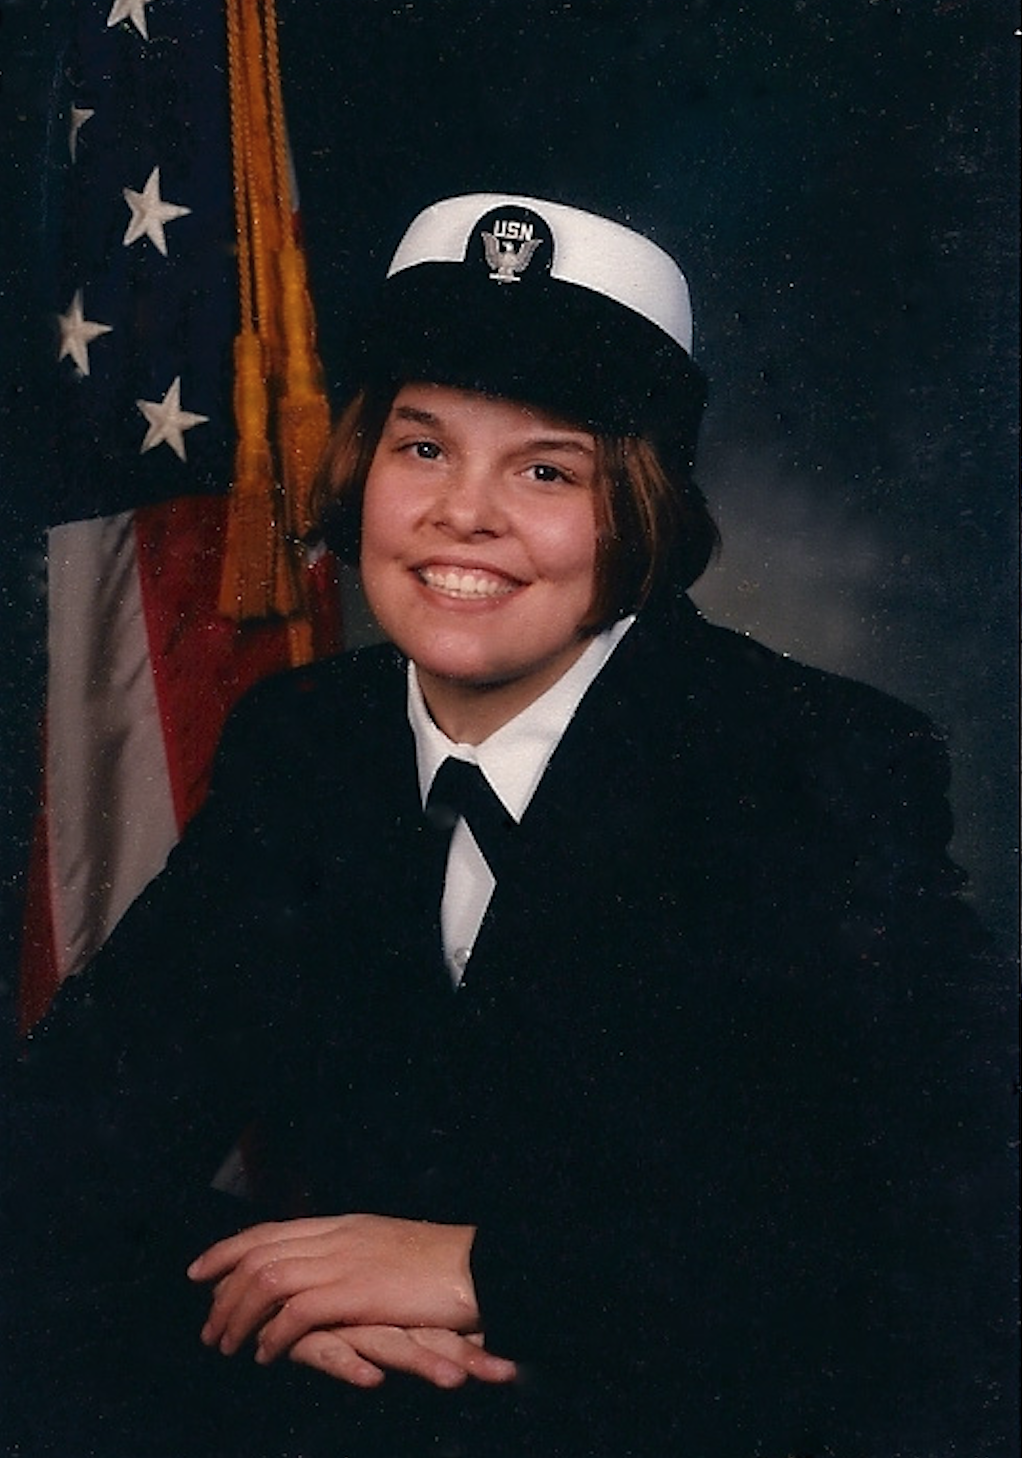 Me in The United States Navy (1996)